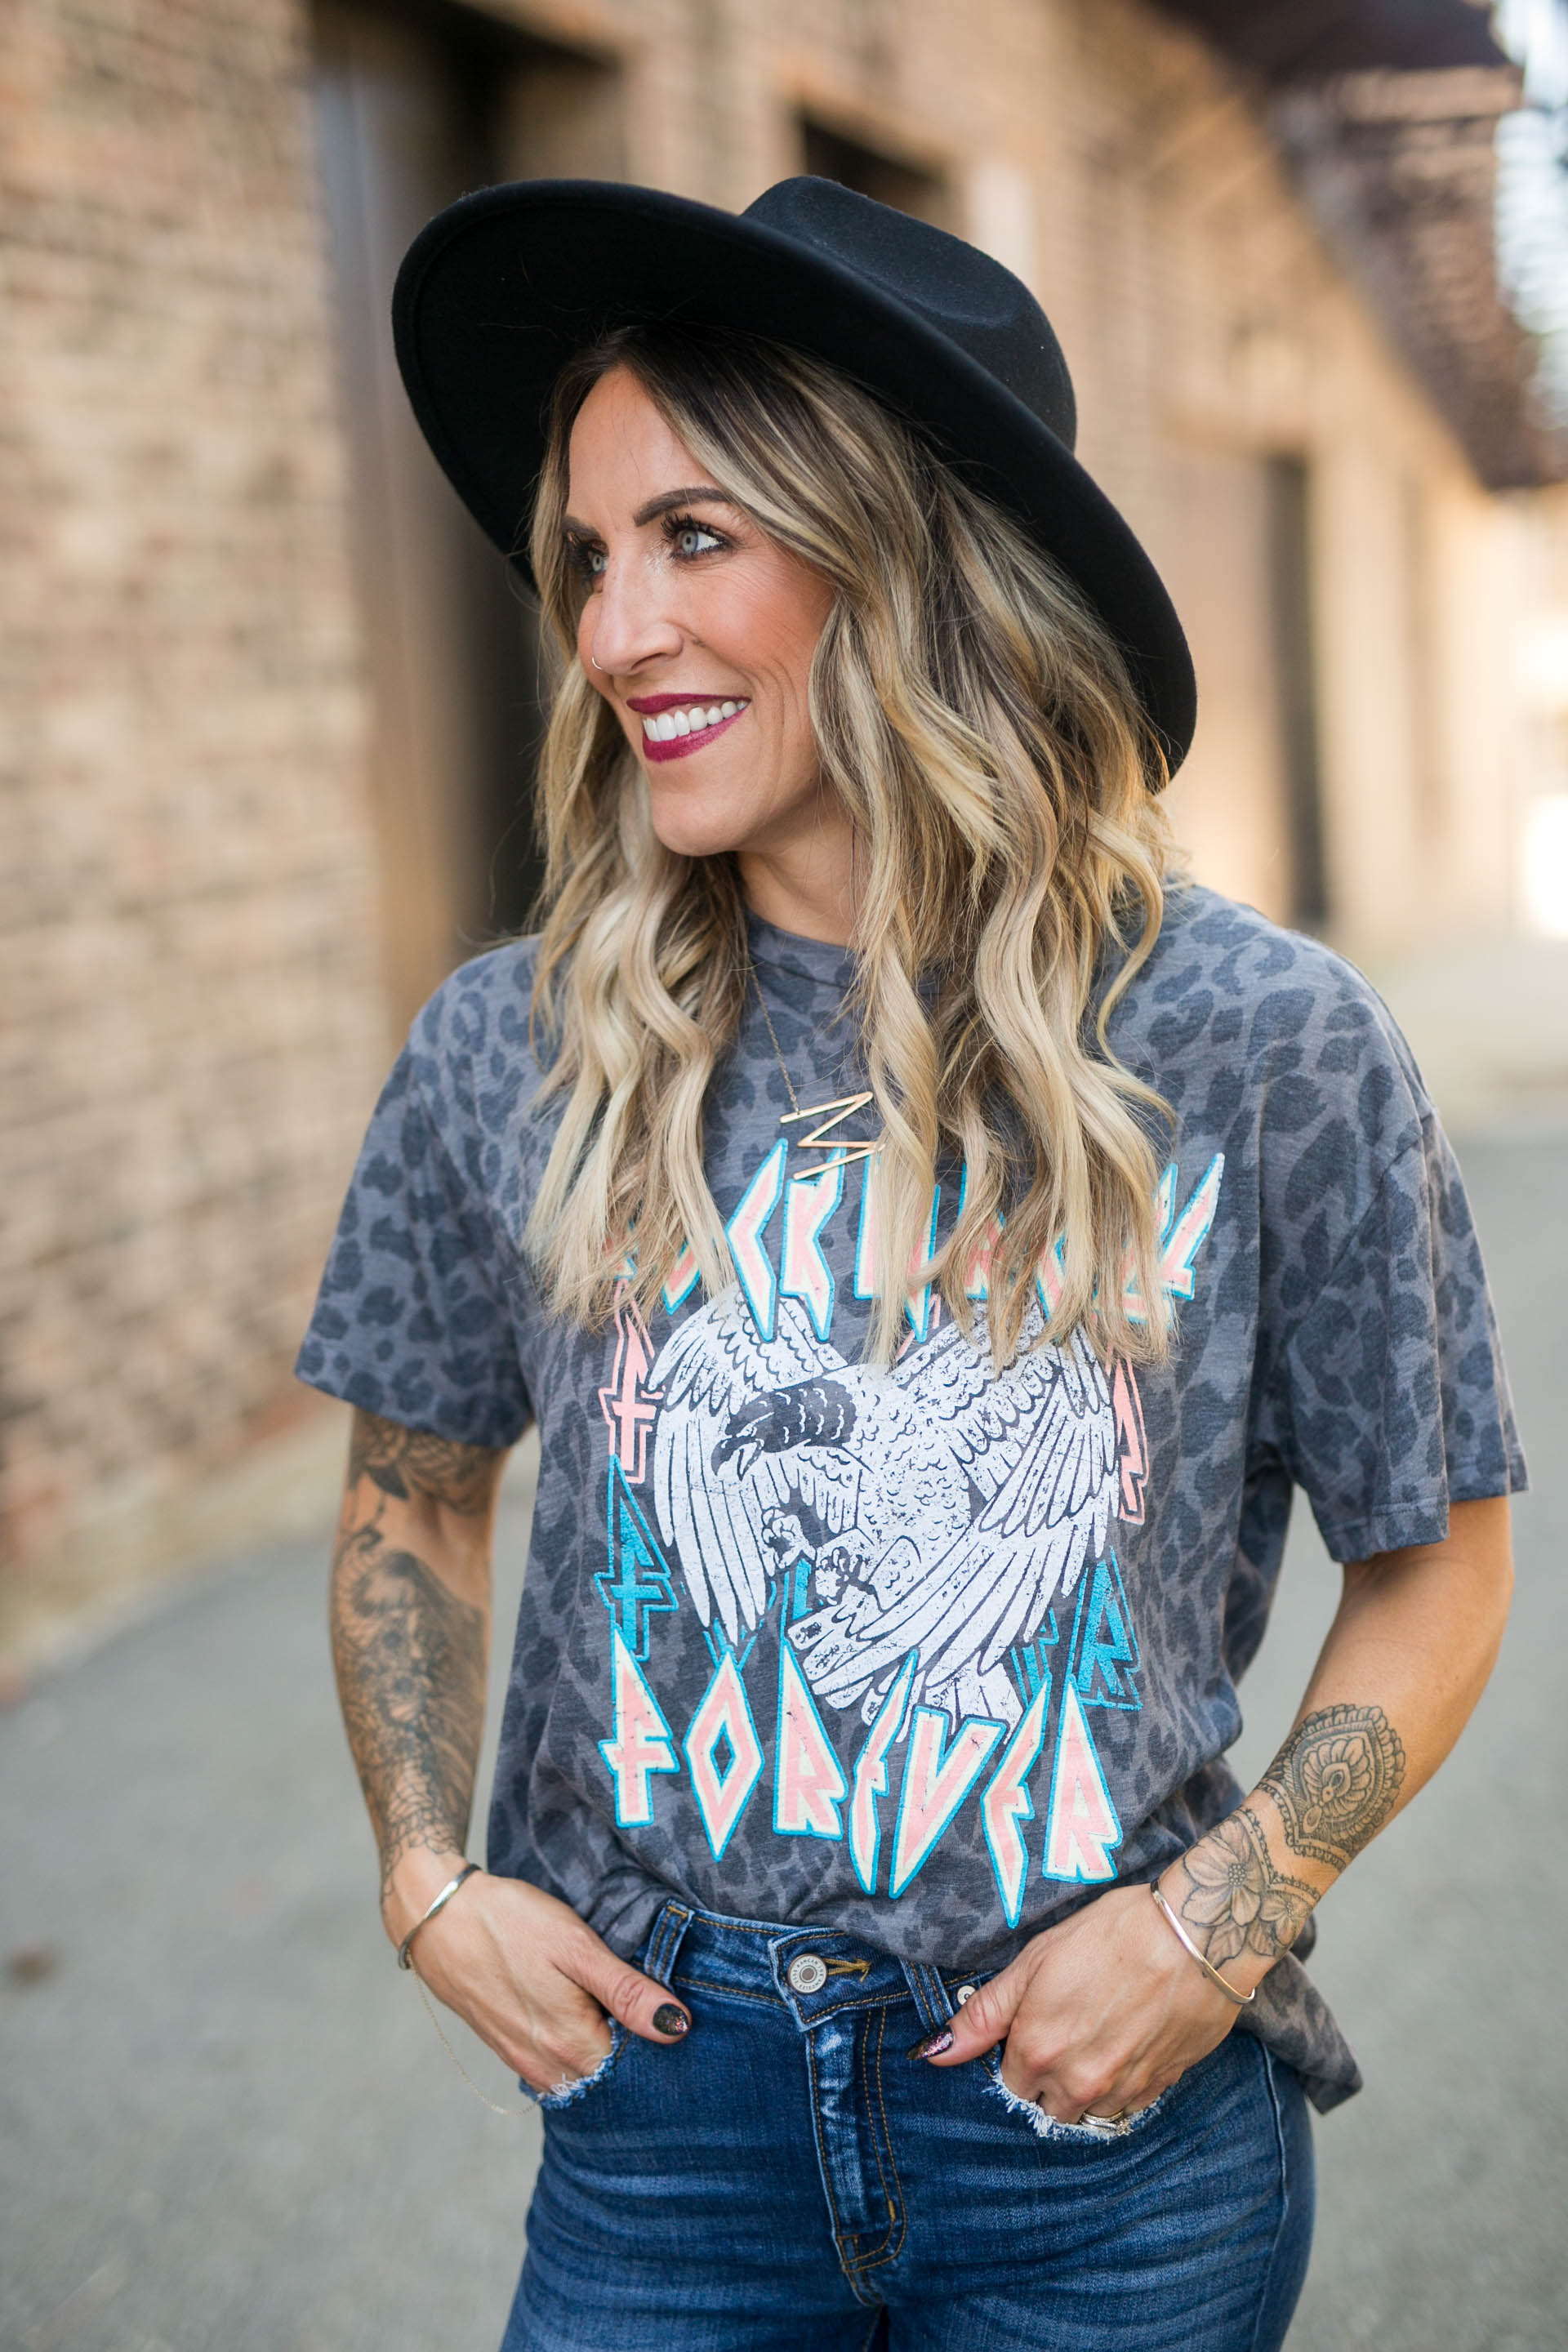 ROCK AND ROLL FOREVER GRAPHIC TOP - GREY